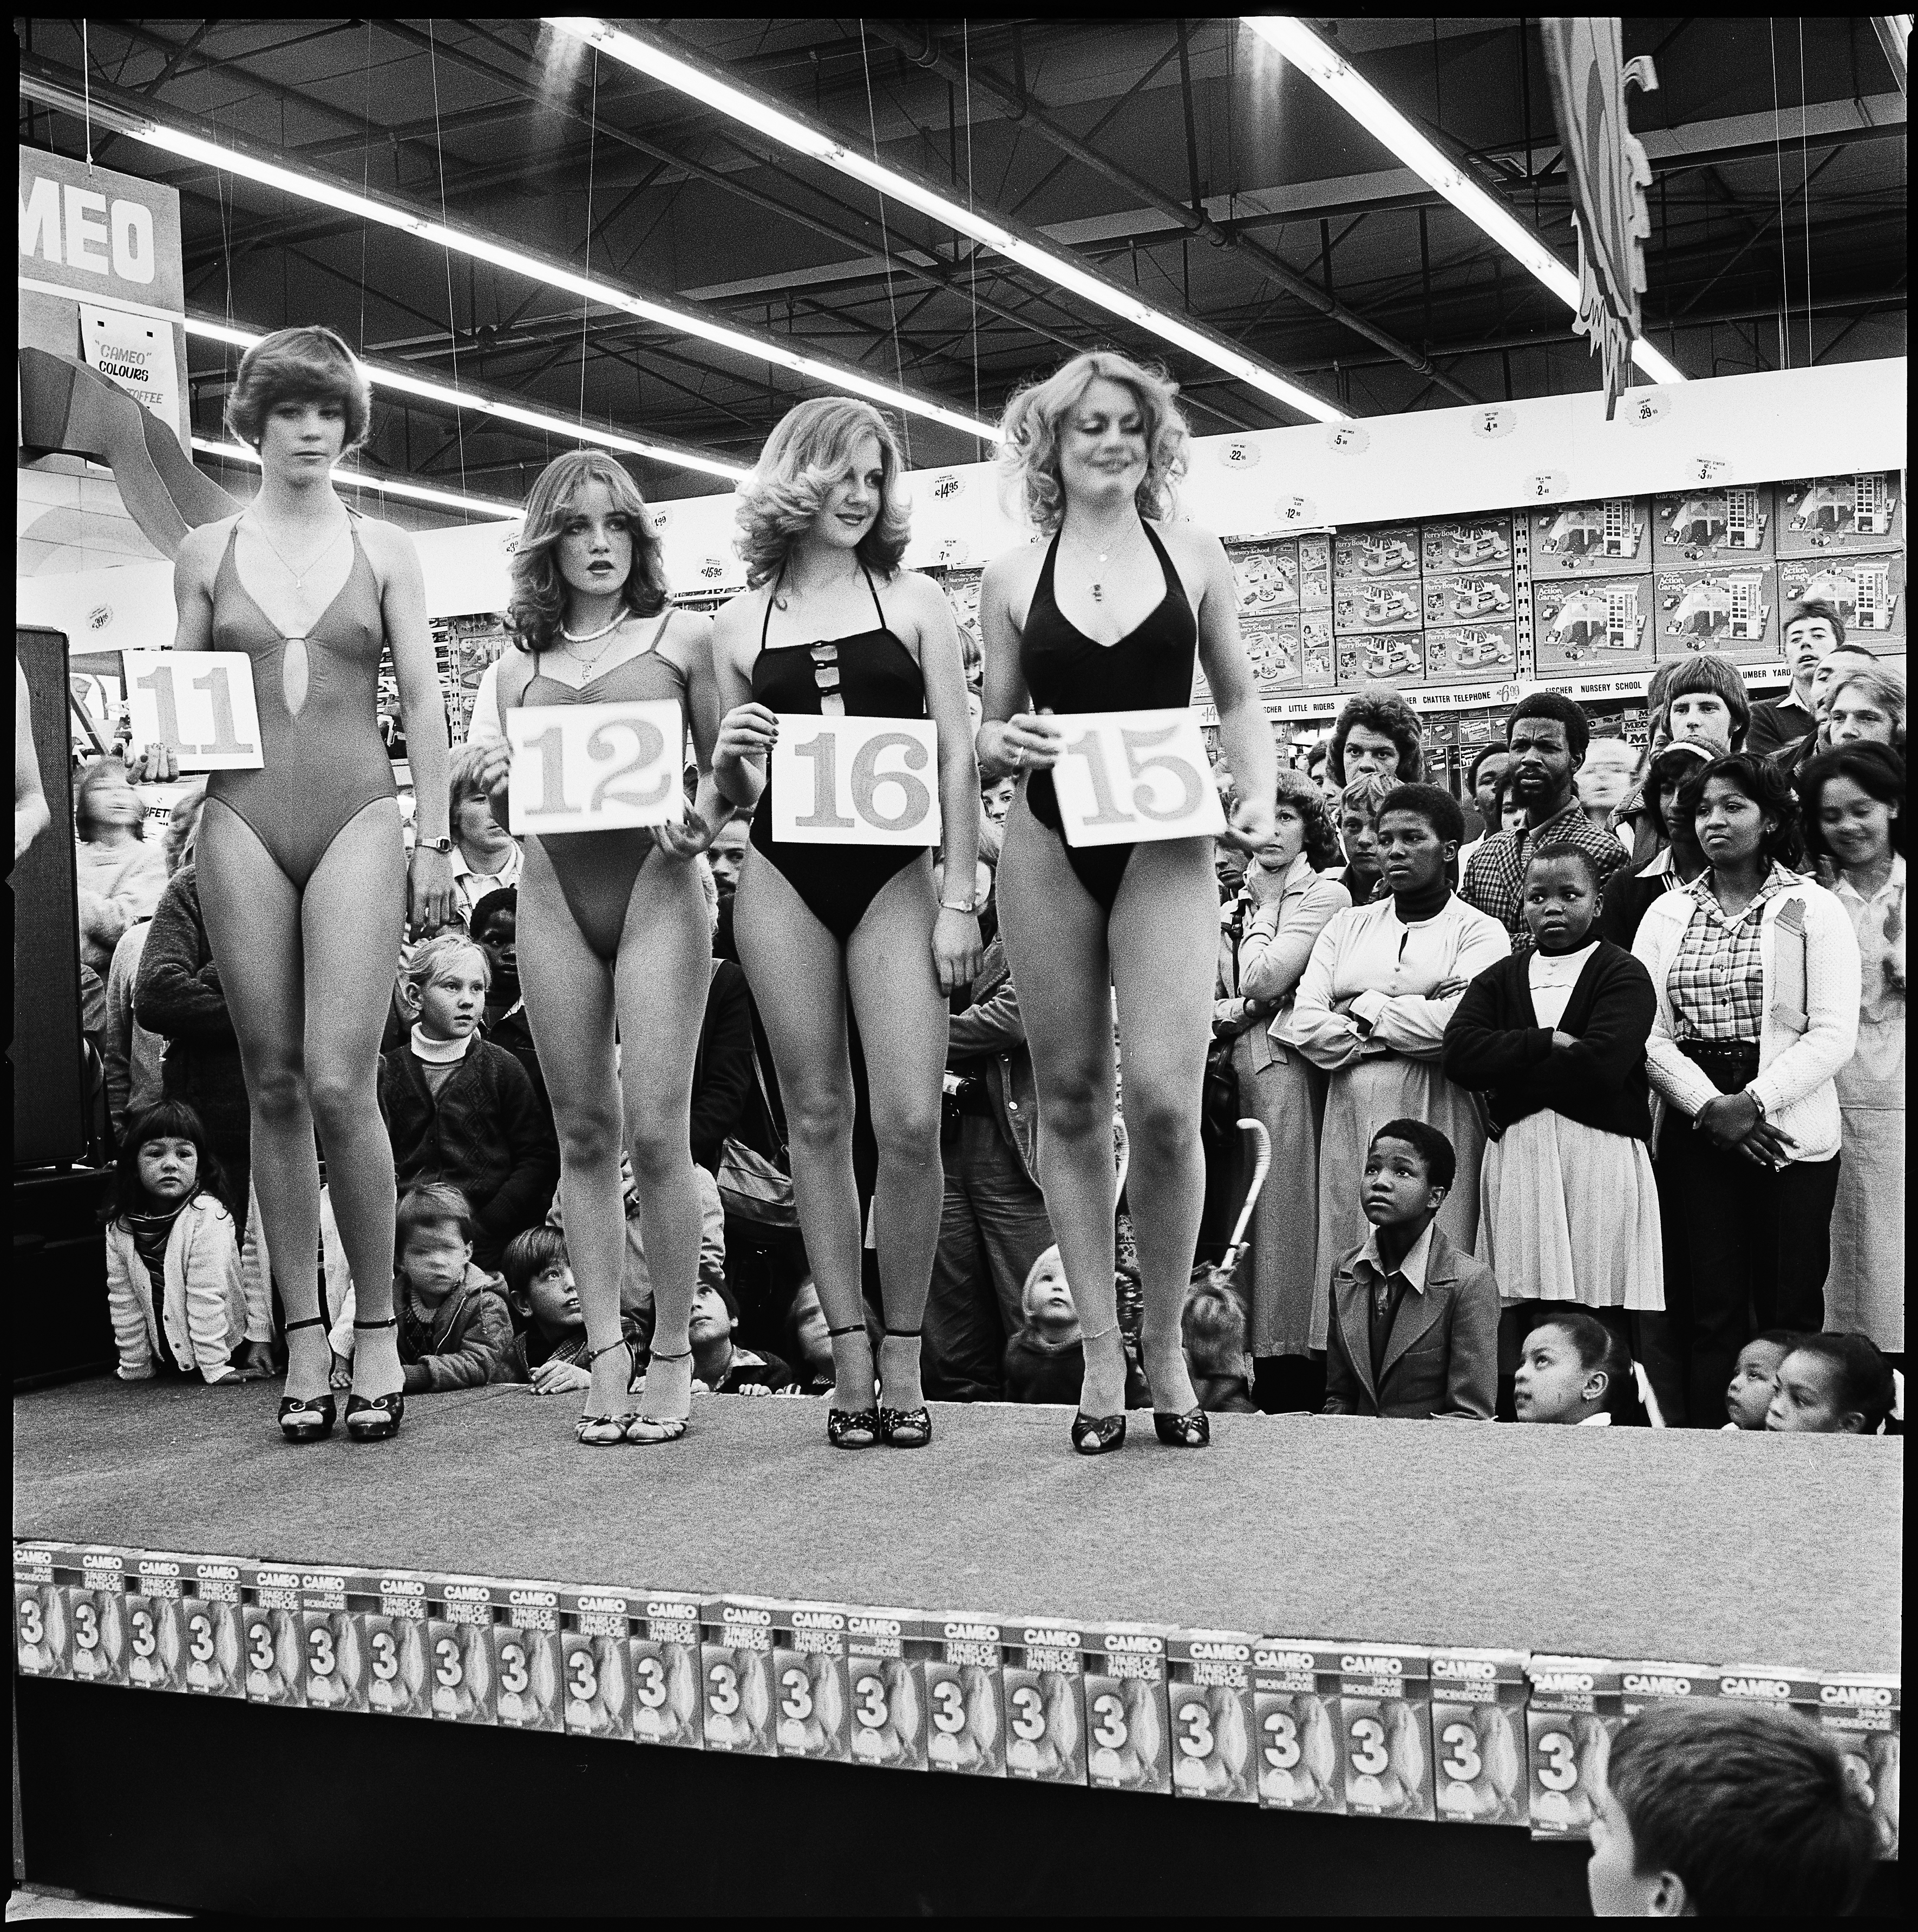 South africa pick n pay upskirts Part 8 5